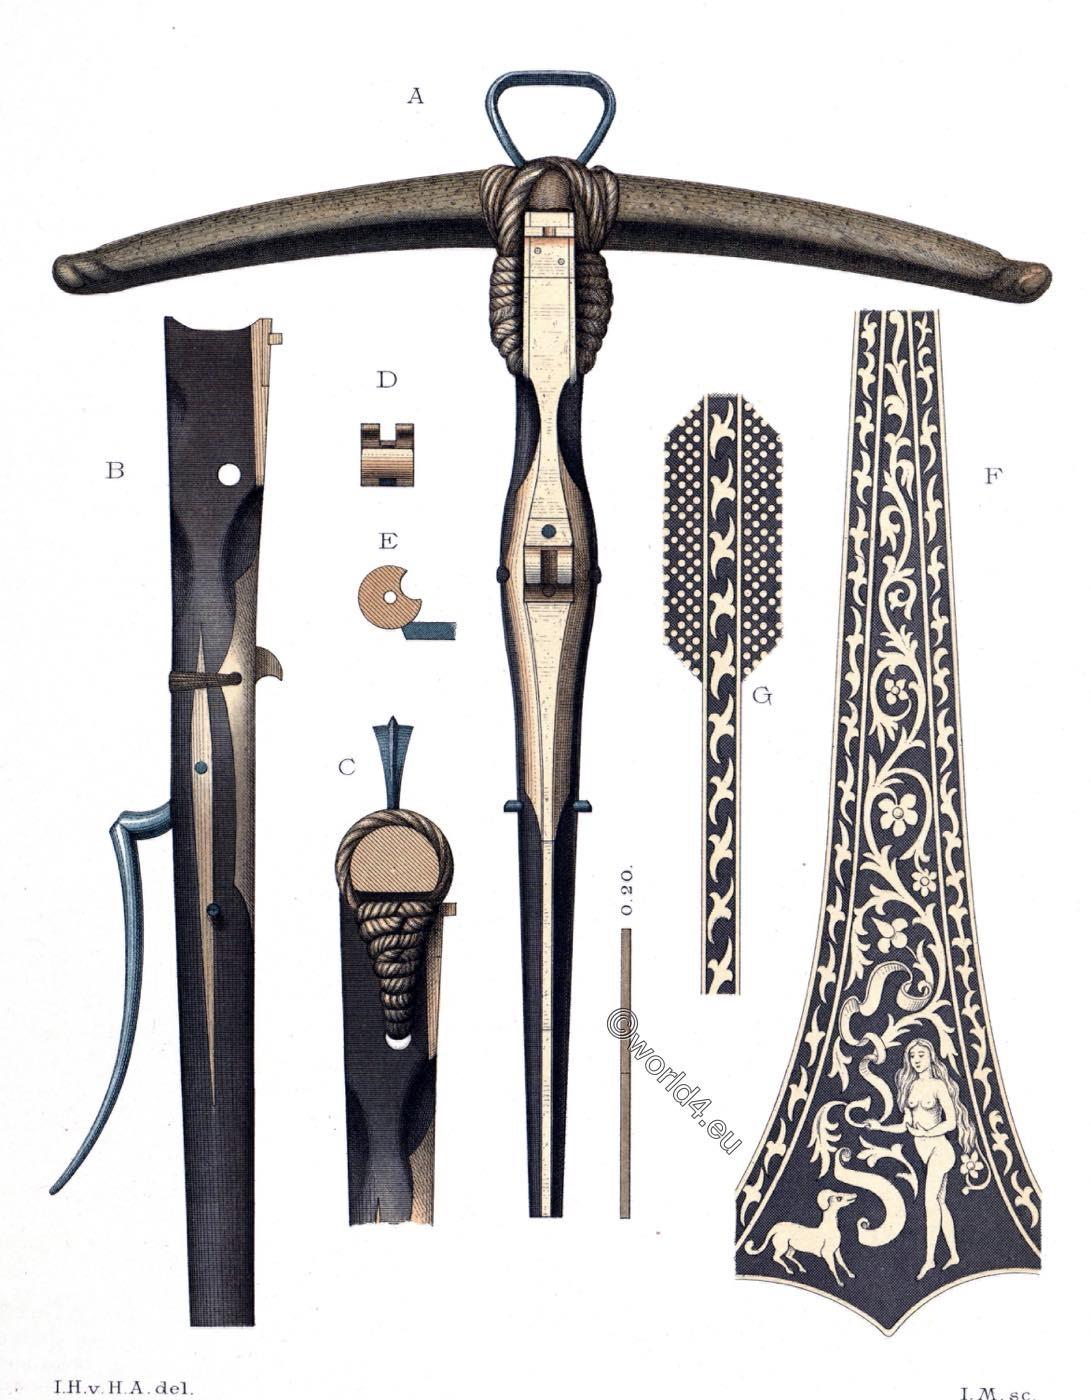 crossbow, ranged, weapon, Middle-ages, Hefner-Alteneck